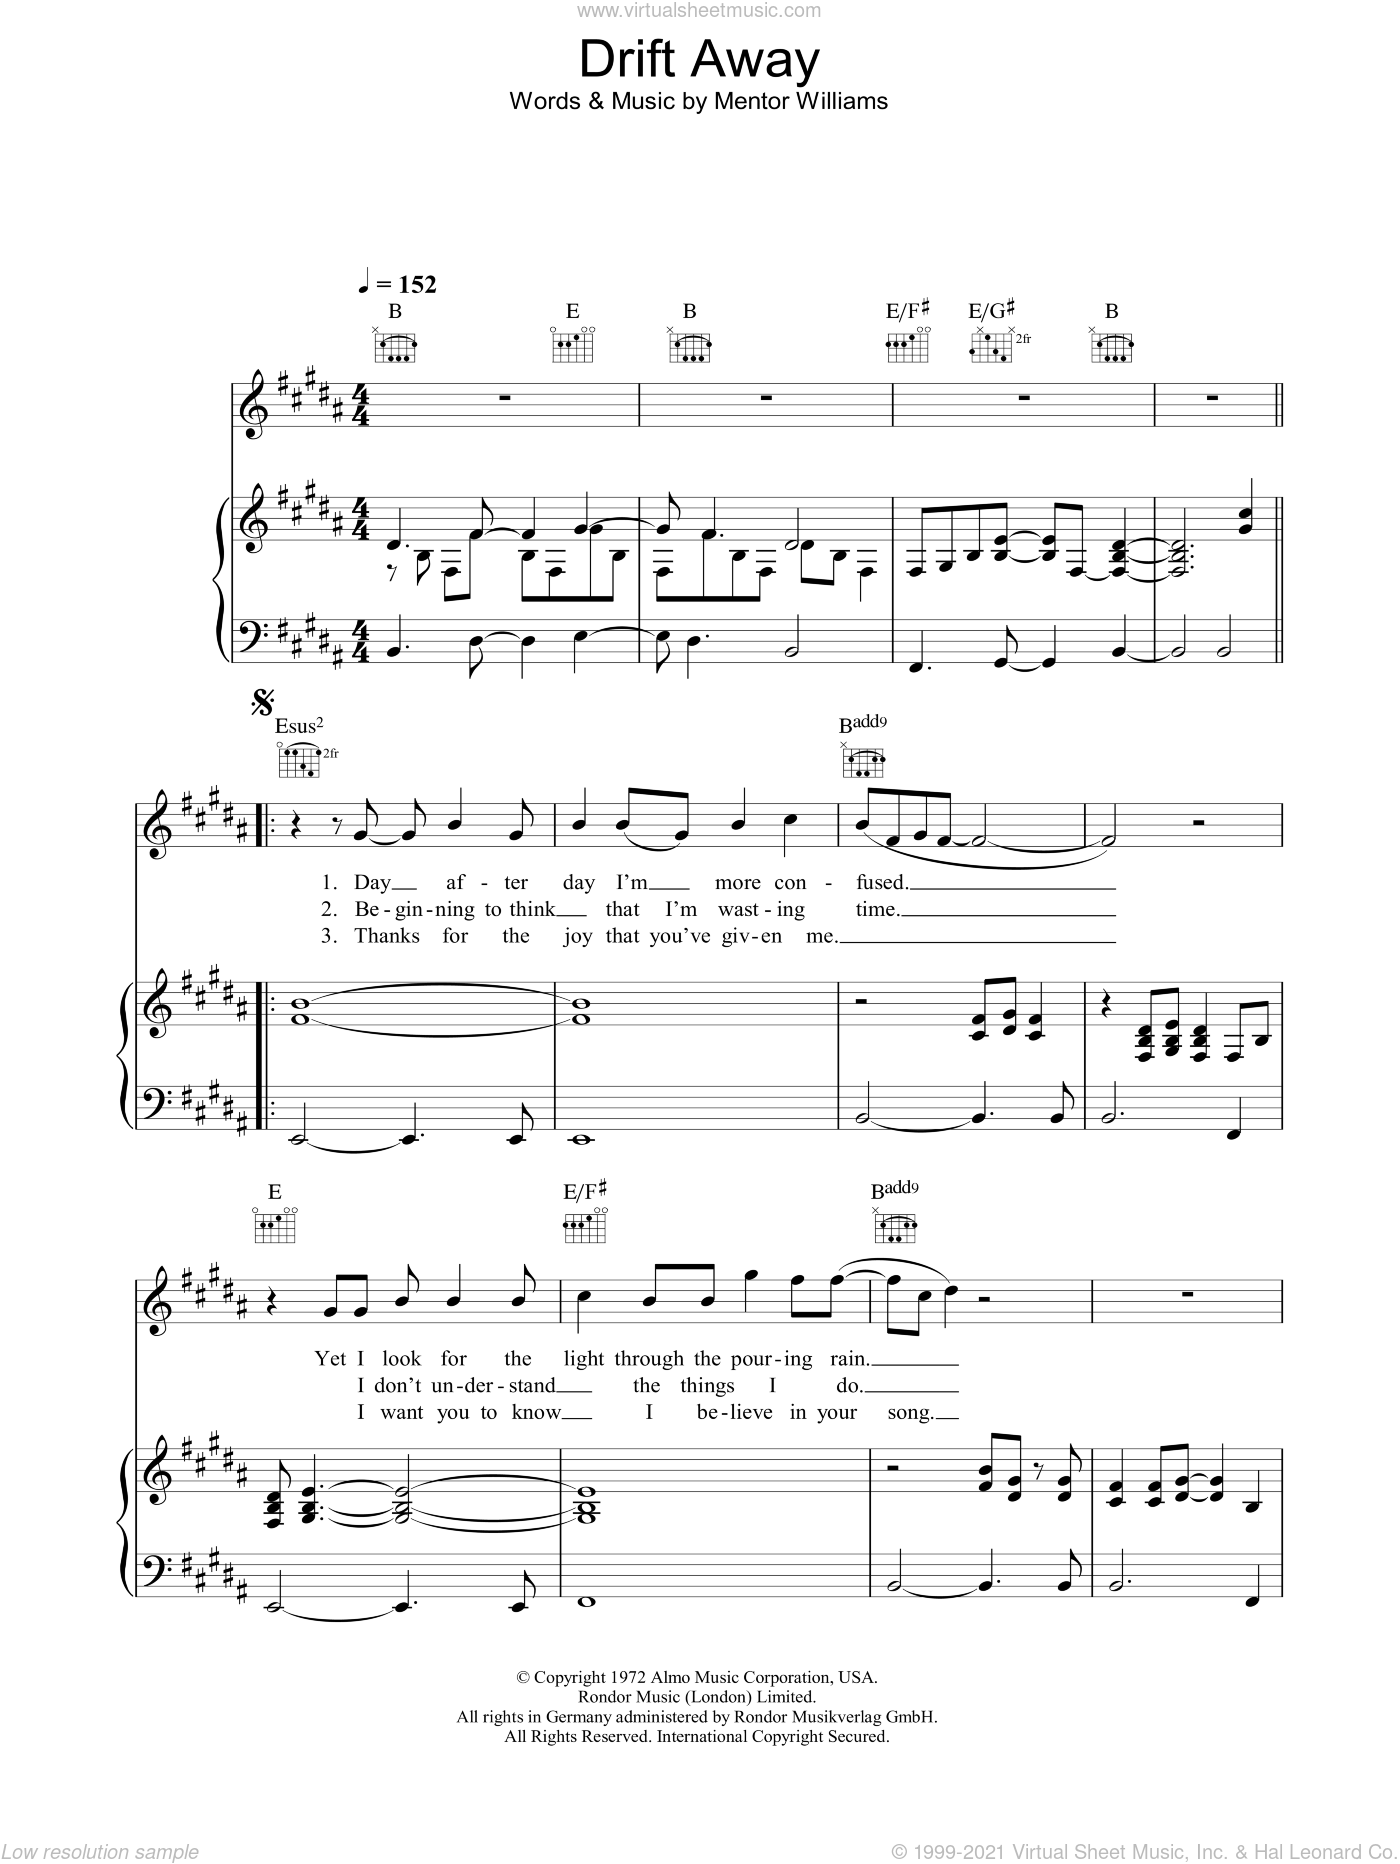 Drift Away sheet music for voice, piano or guitar by Dobie Gray and Mentor Williams, intermediate skill level